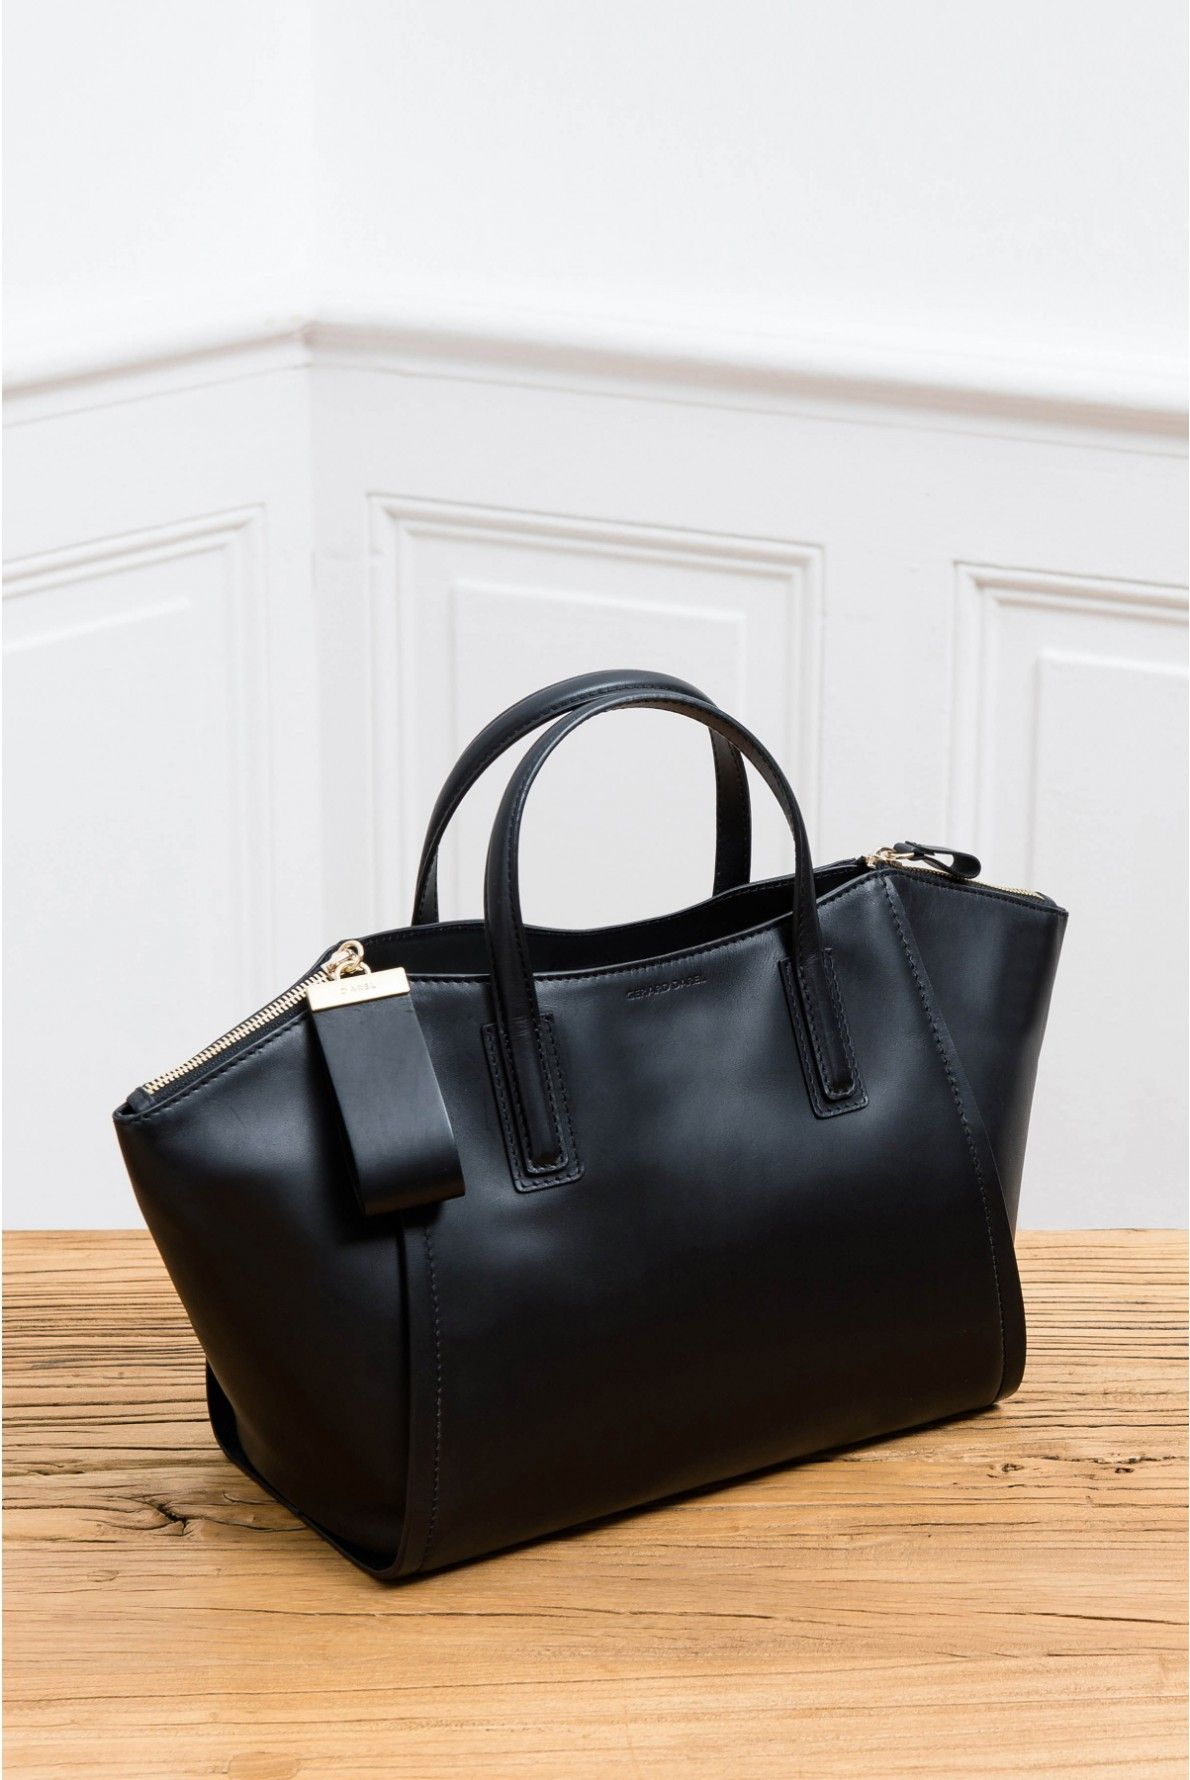 1d2b80ddcb Sac noir, le visconti | gerard darel | Furnace while | Pinterest ...